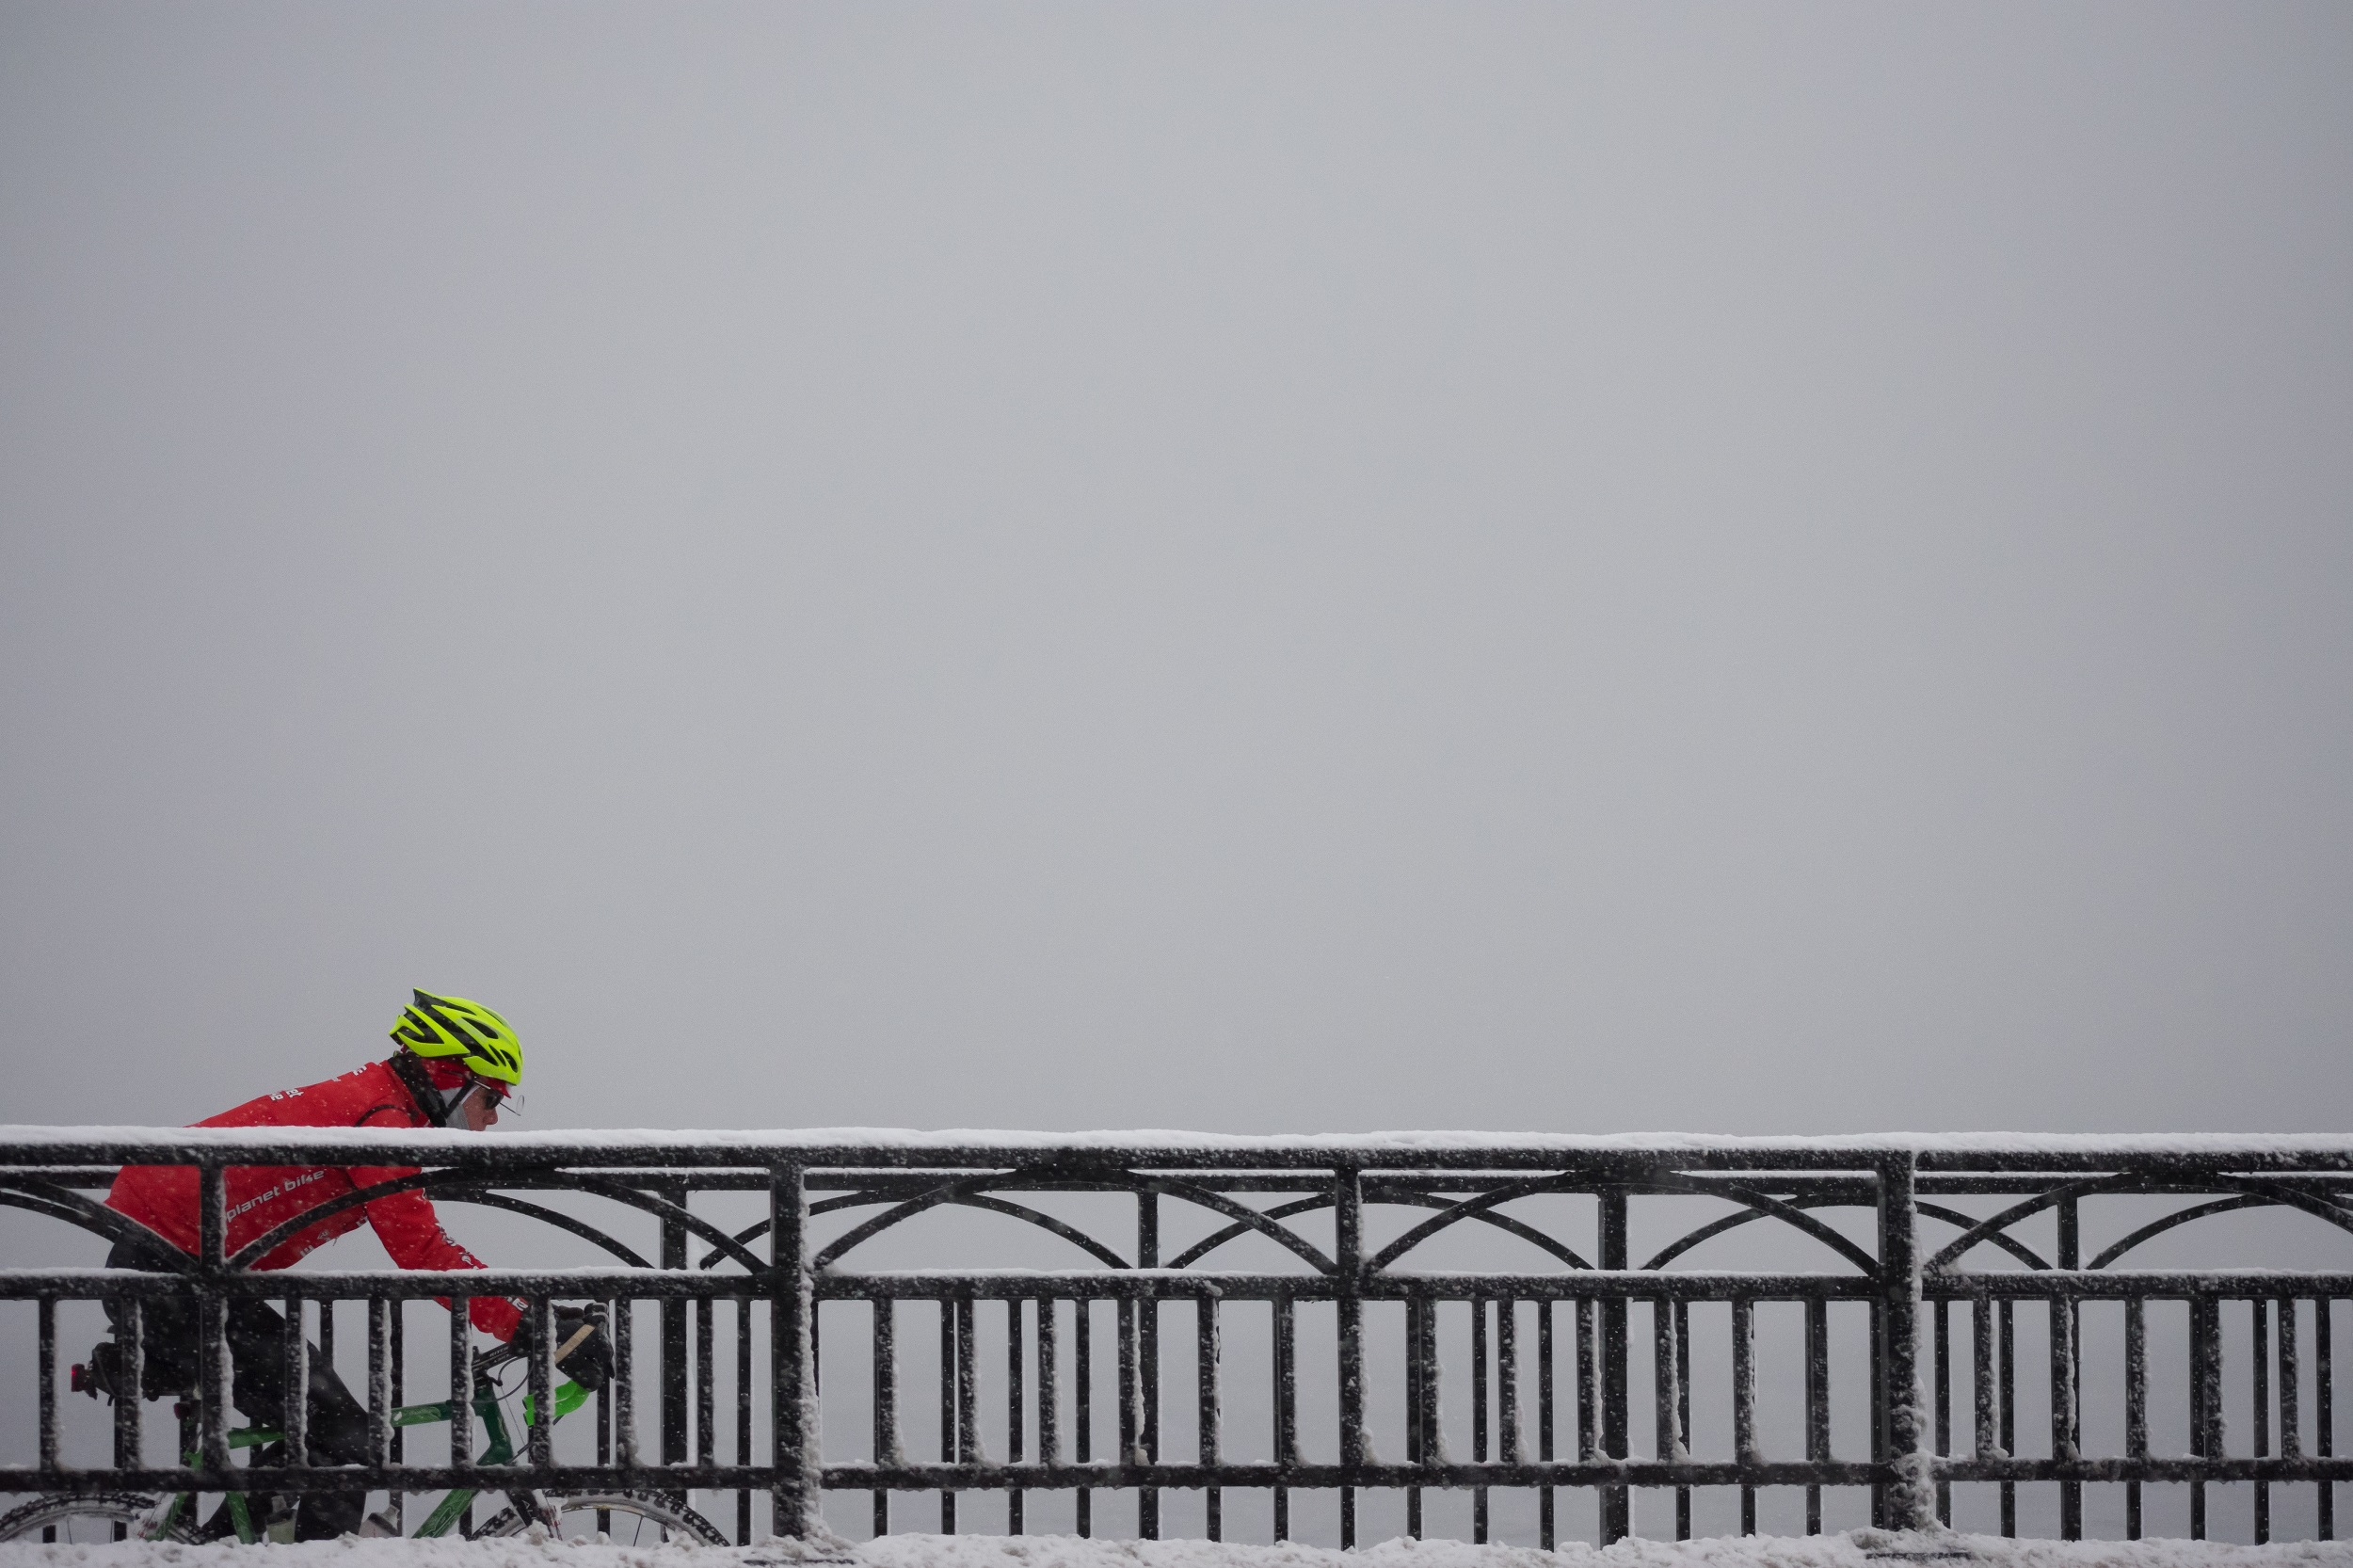 The snow is here to stay, but that doesn't mean you should be kept from cycling for exercise or commuting. It's important to do safe winter biking as the roads and weather create dangerous conditions.